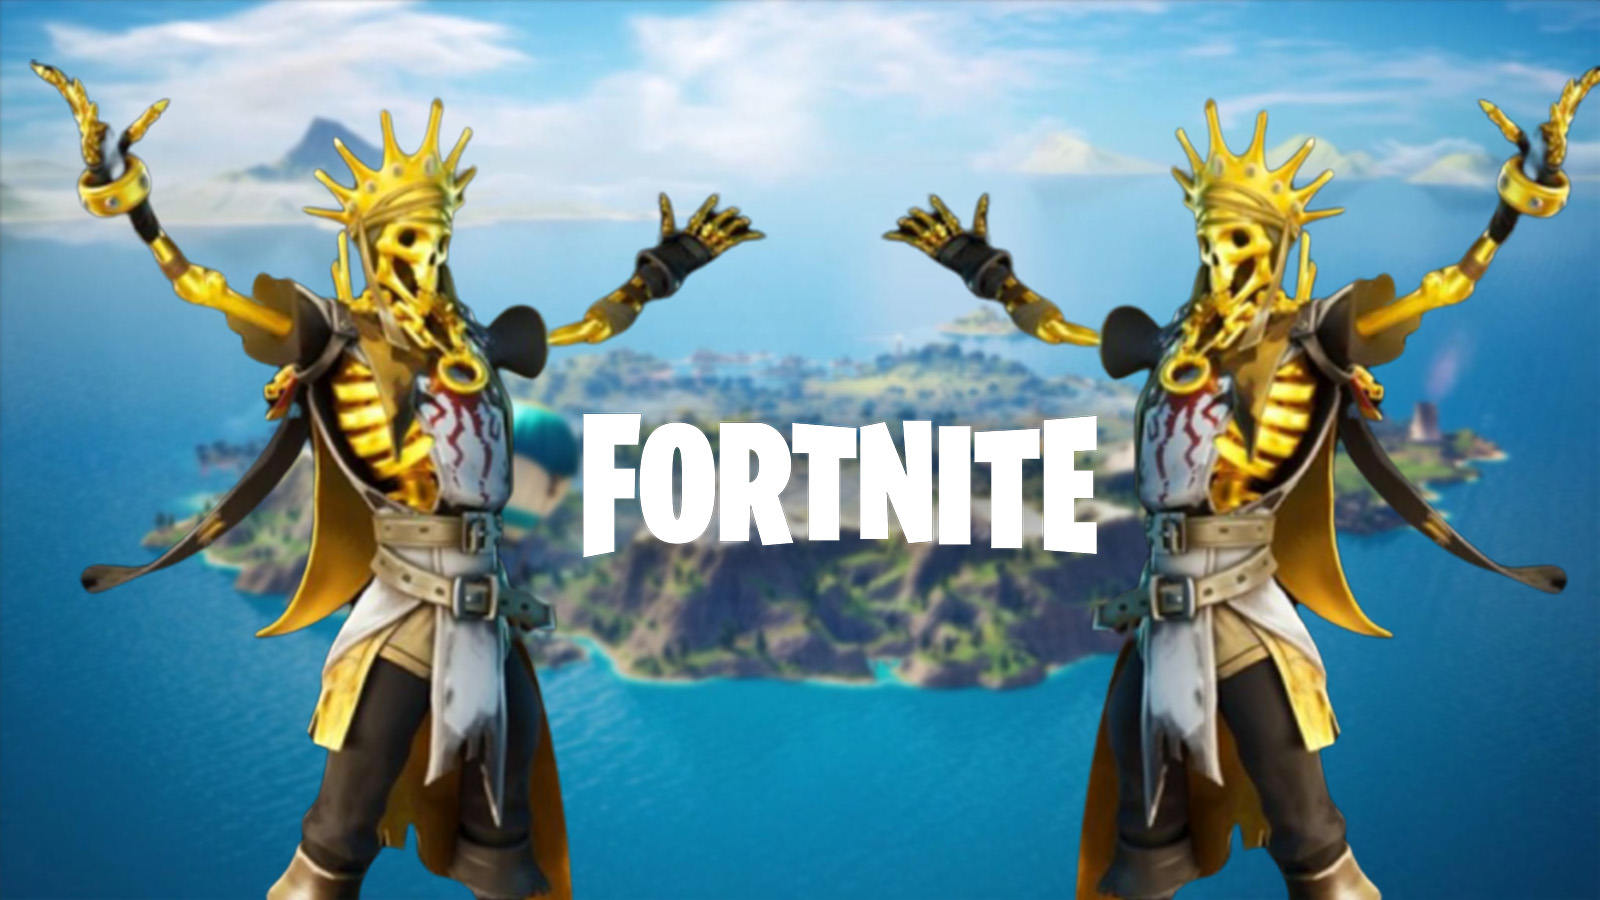 fortnite gold objects